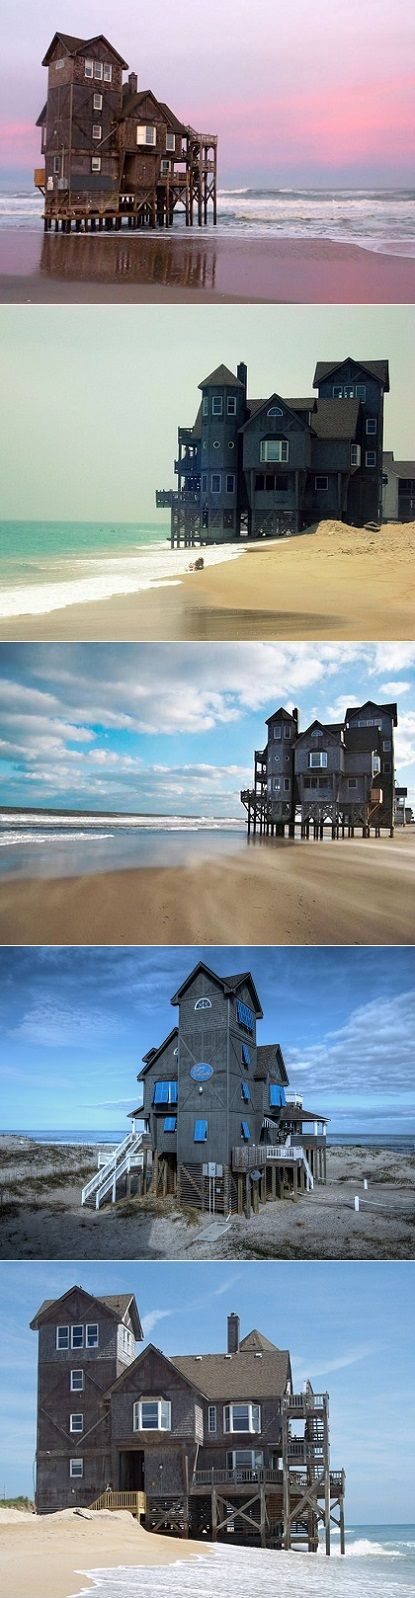 "Serendipity House in Rodanthe, NC. Used for the movie ""Nights in Rodanthe"" with Richard Gere."